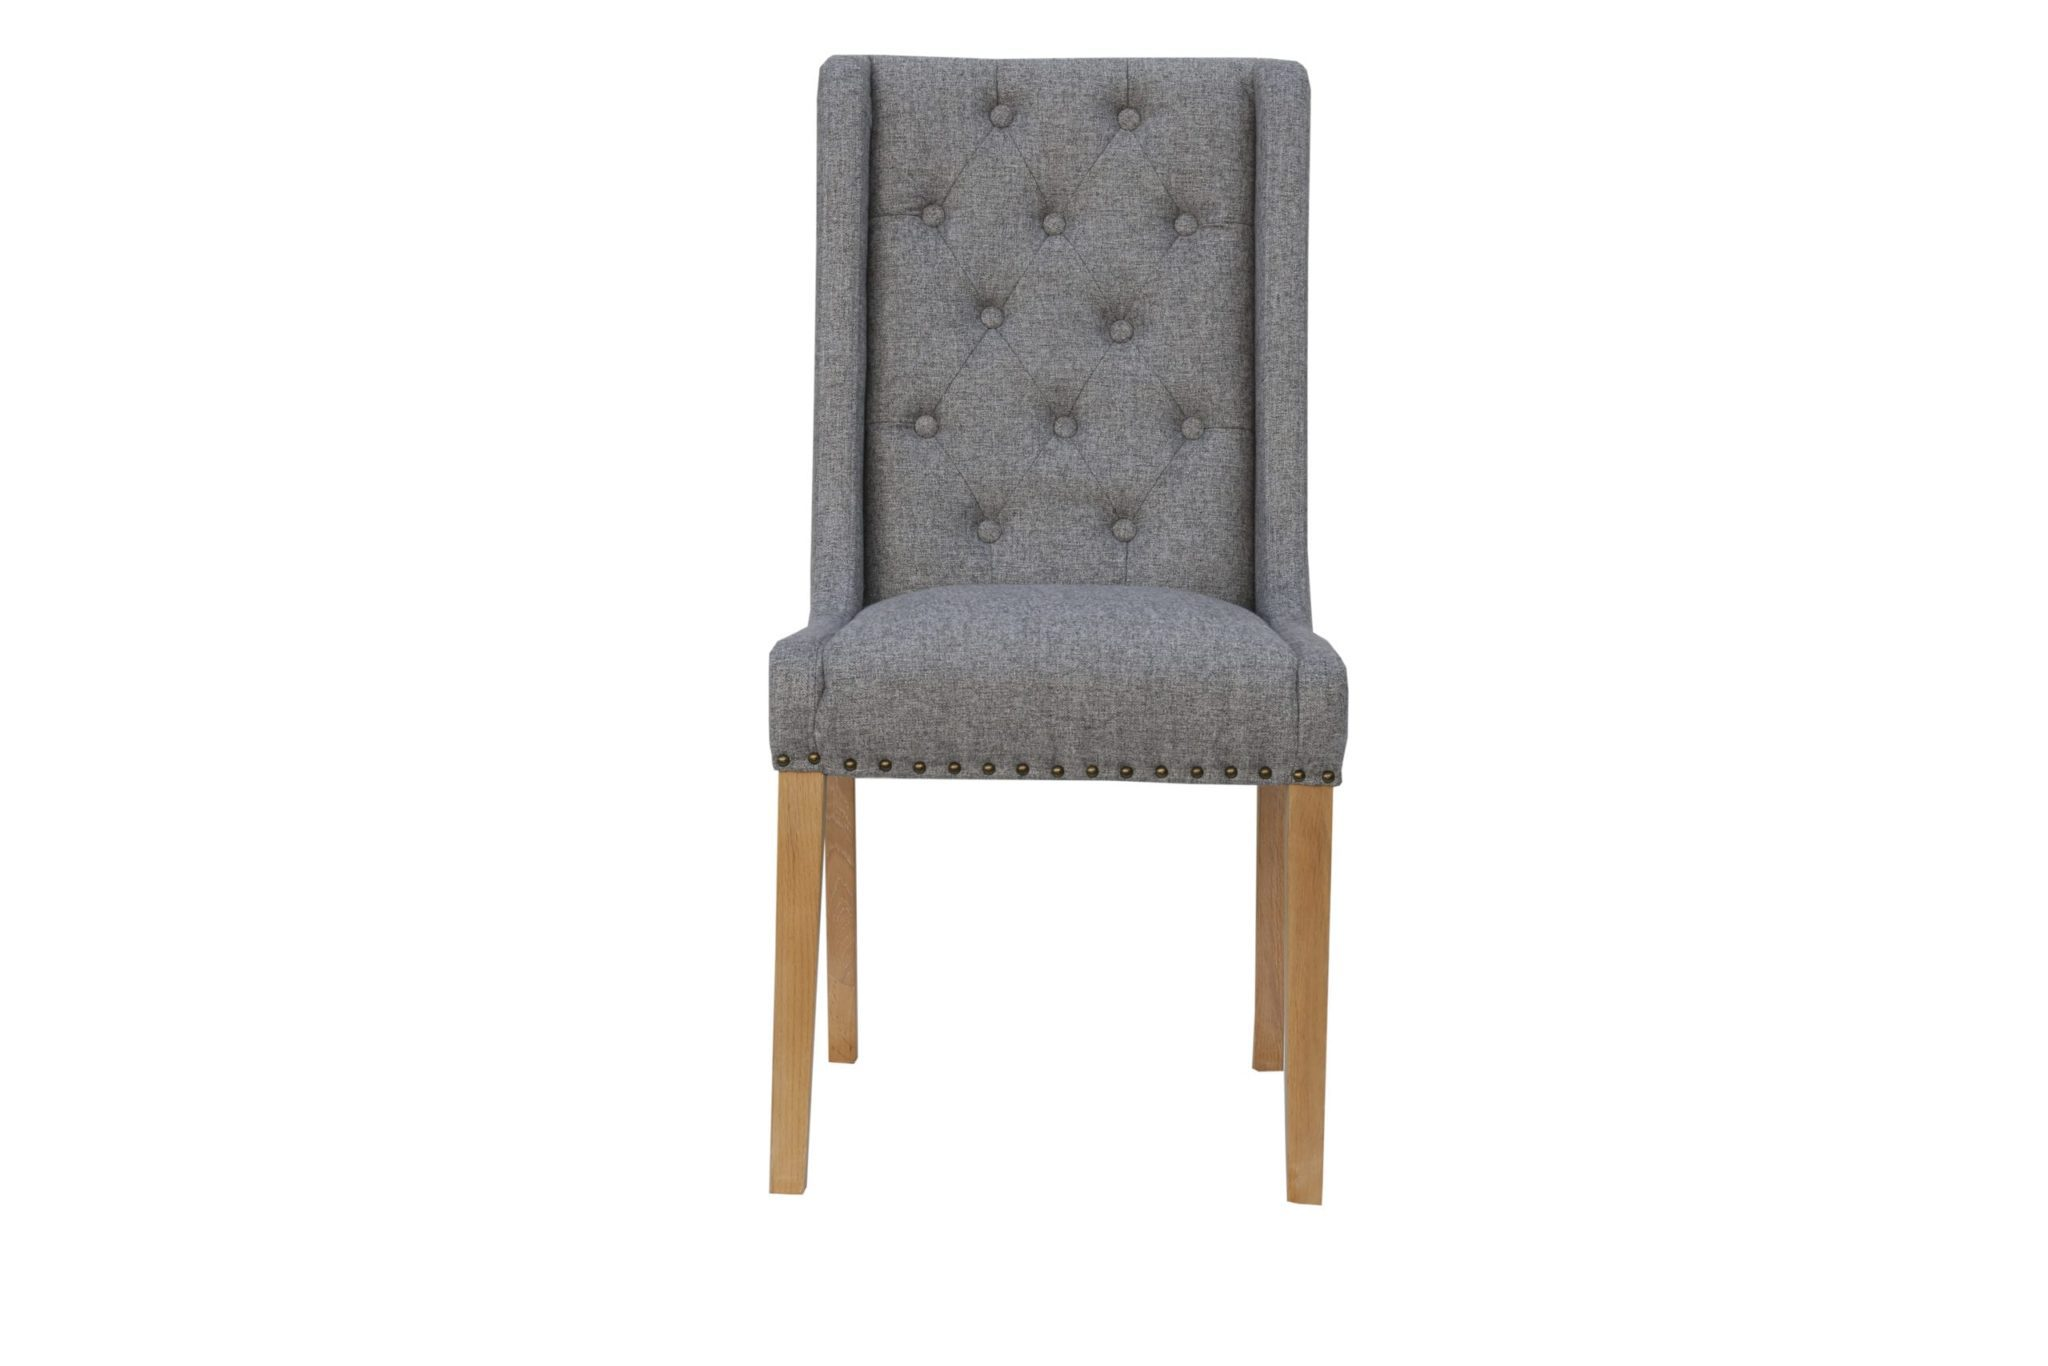 Button Studded Chair light grey with side supports